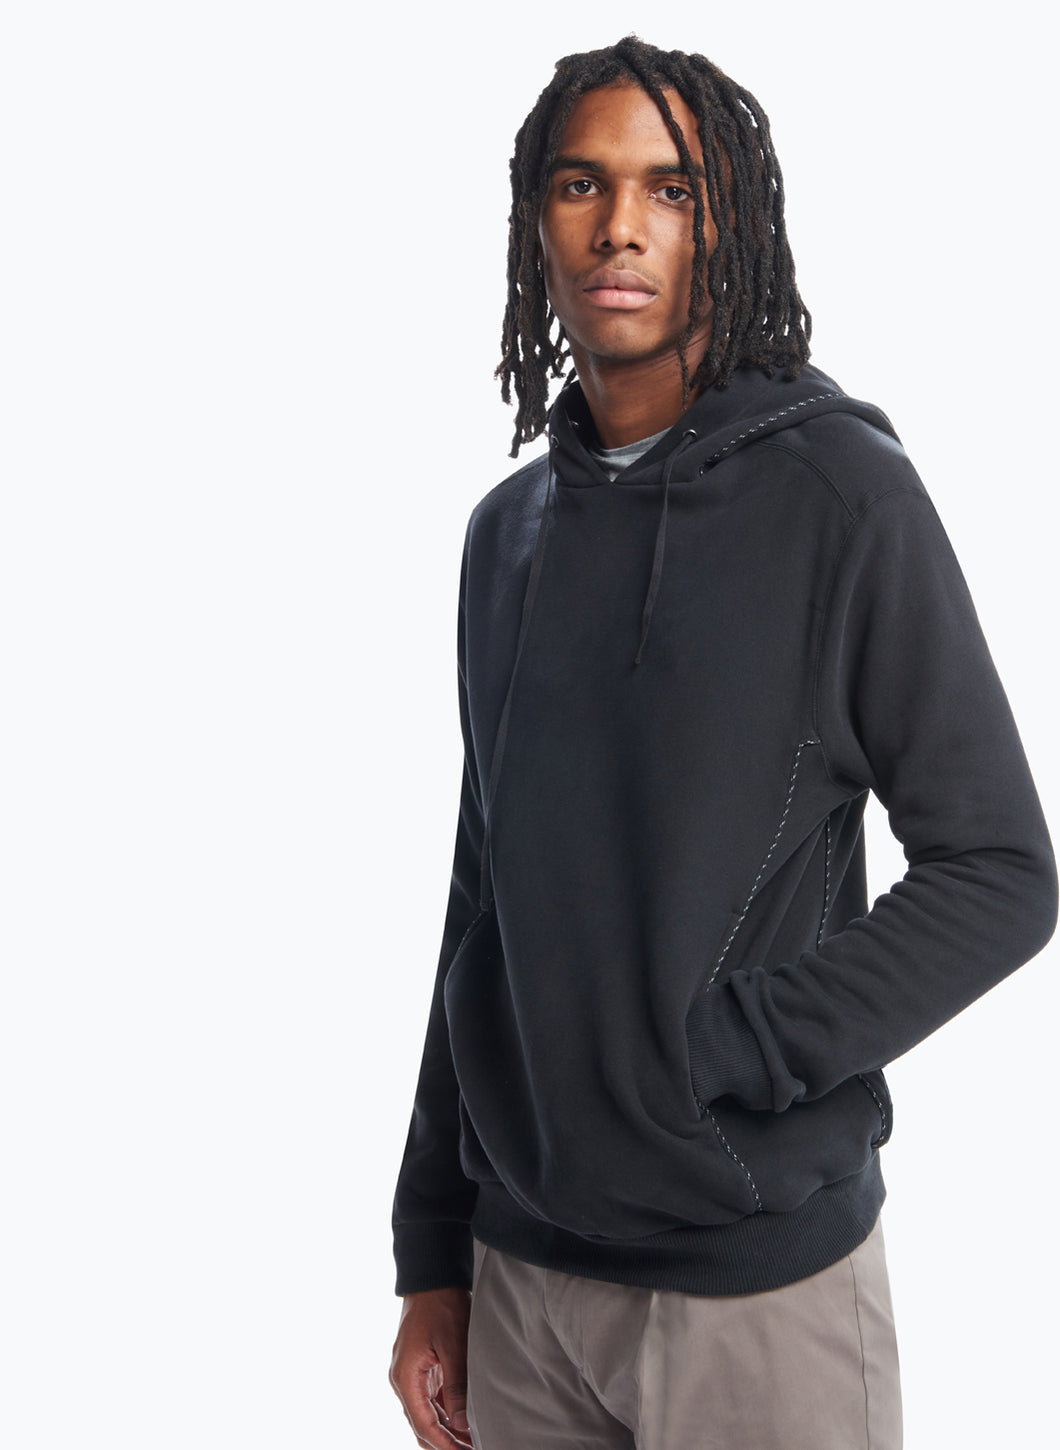 Hooded Sweatshirt with Cuts in Black Fleece with Black Trim